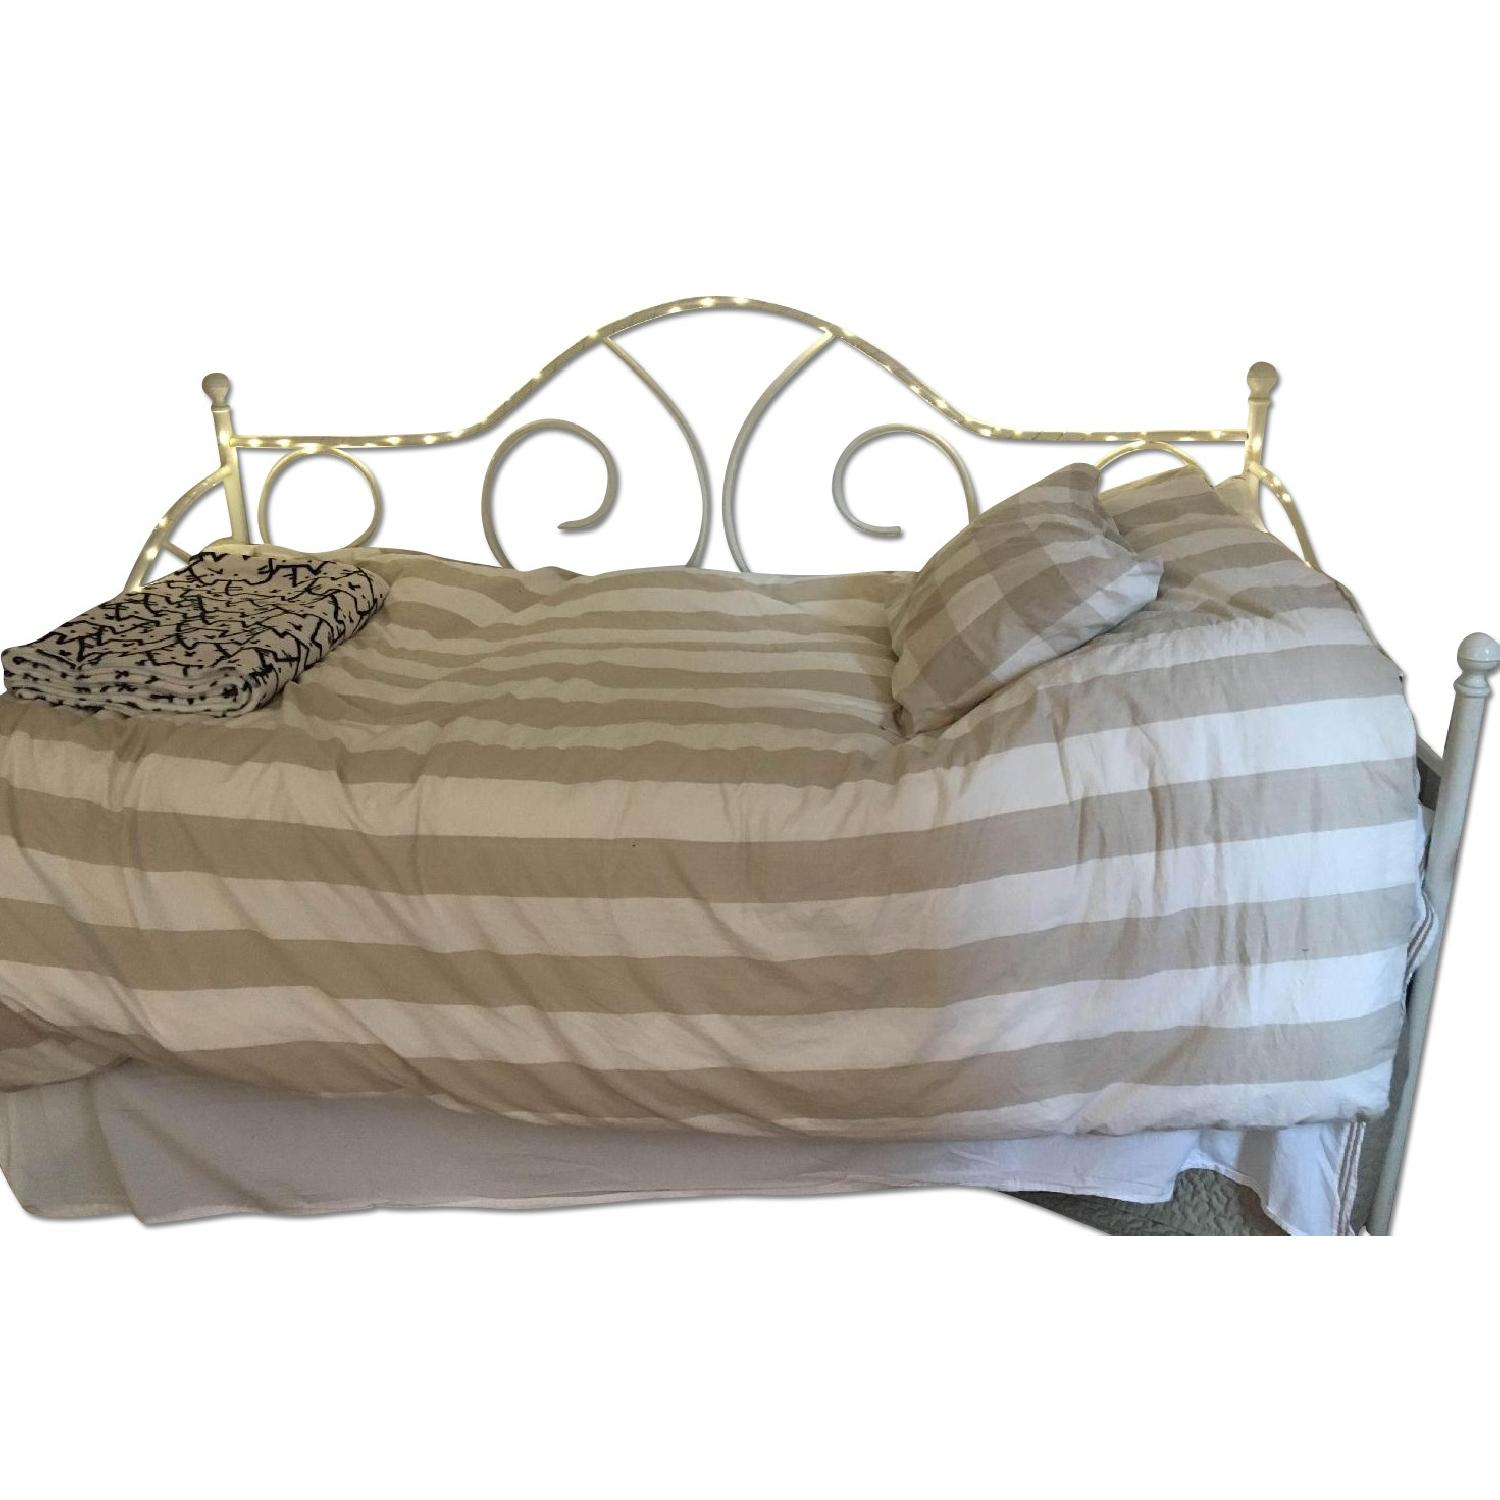 Pottery Barn Ivory Daybed - image-0